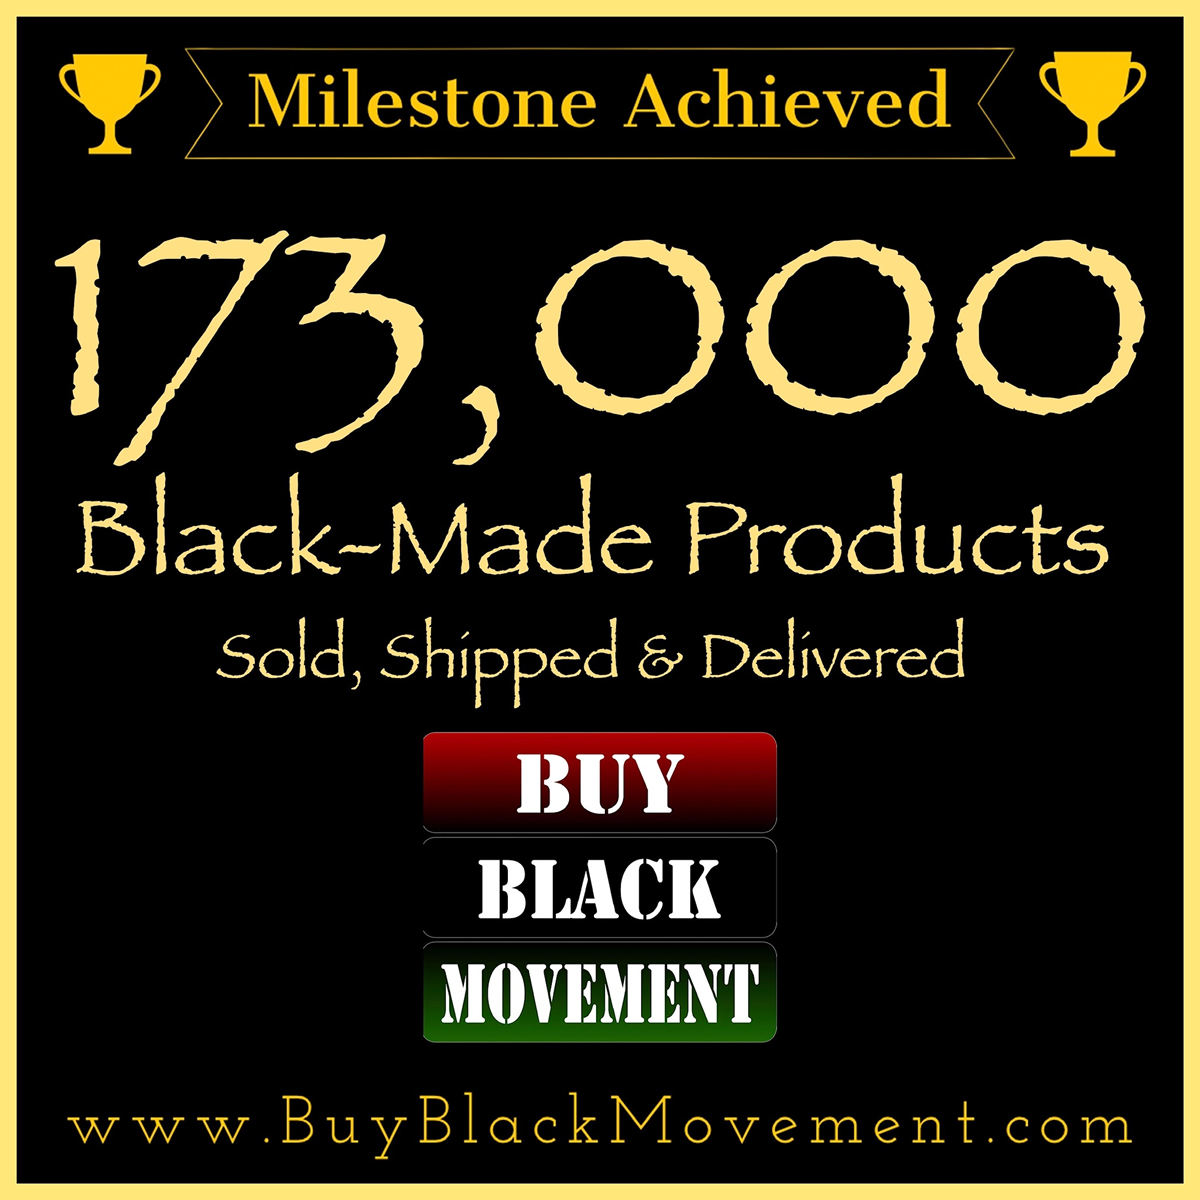 173,000 Products Sold